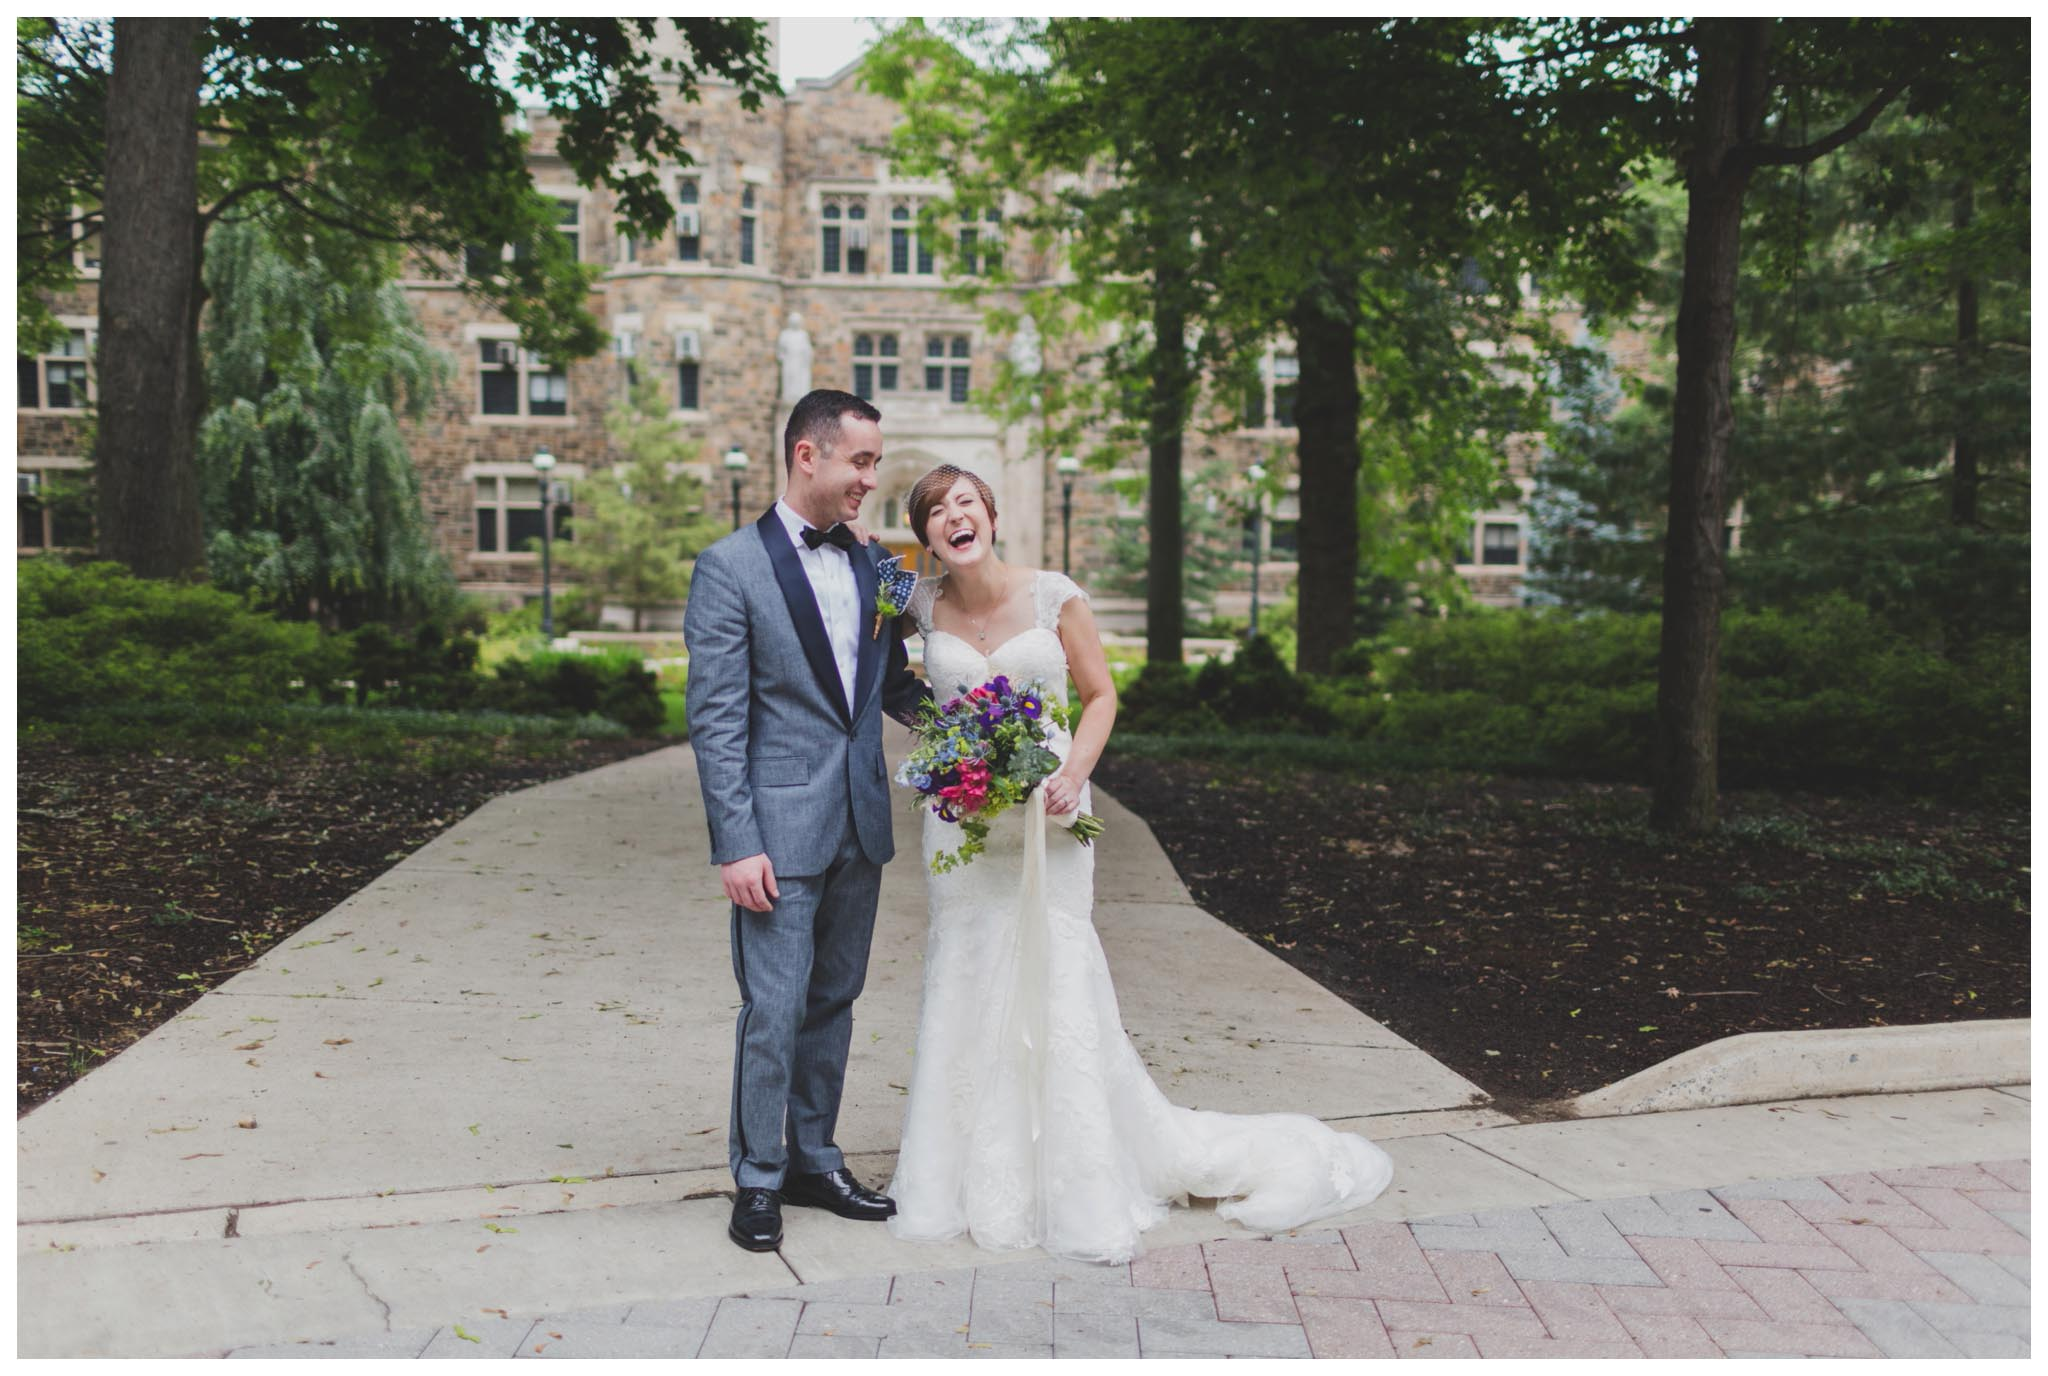 Lehigh University, wedding